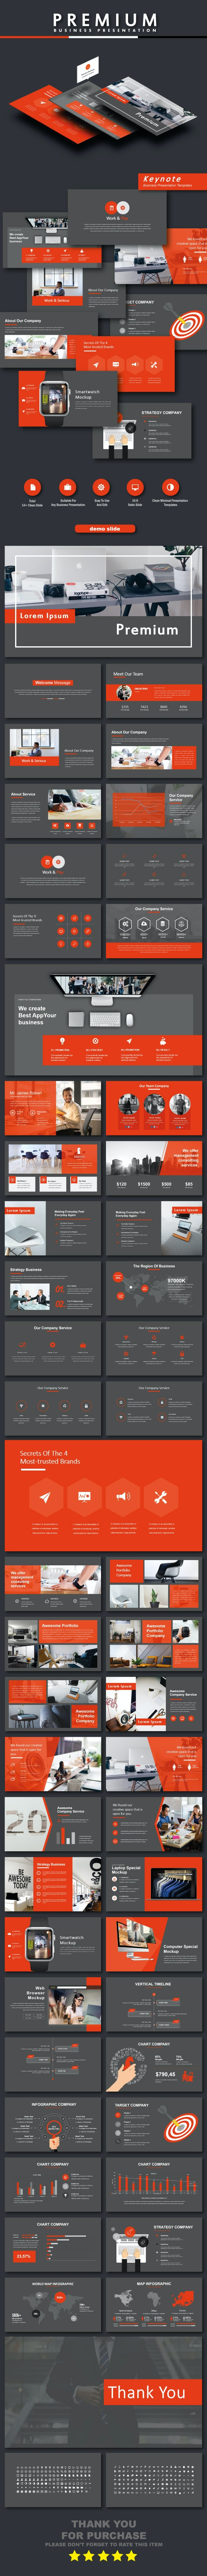 Premium Business Keynote Templates - Business PowerPoint Templates